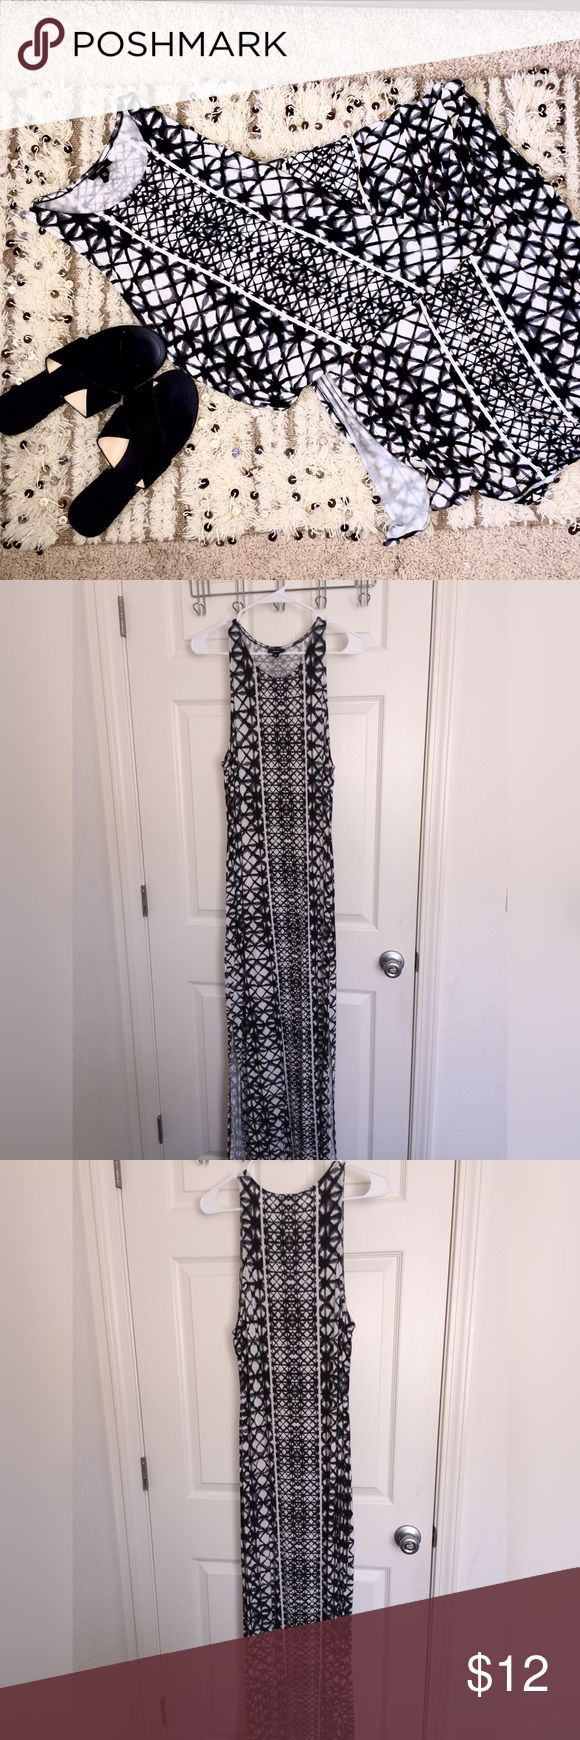 🌴🎀NEW🎀🌴 Sexy Black and White Maxi Dress figure-hugging slinky black and white patterned maxi dress by Mossimo that is sure to look great on your next date night!  ✨just trying to clean out my closet, make an offer and it's yours!✨ Mossimo Supply Co. Dresses Maxi